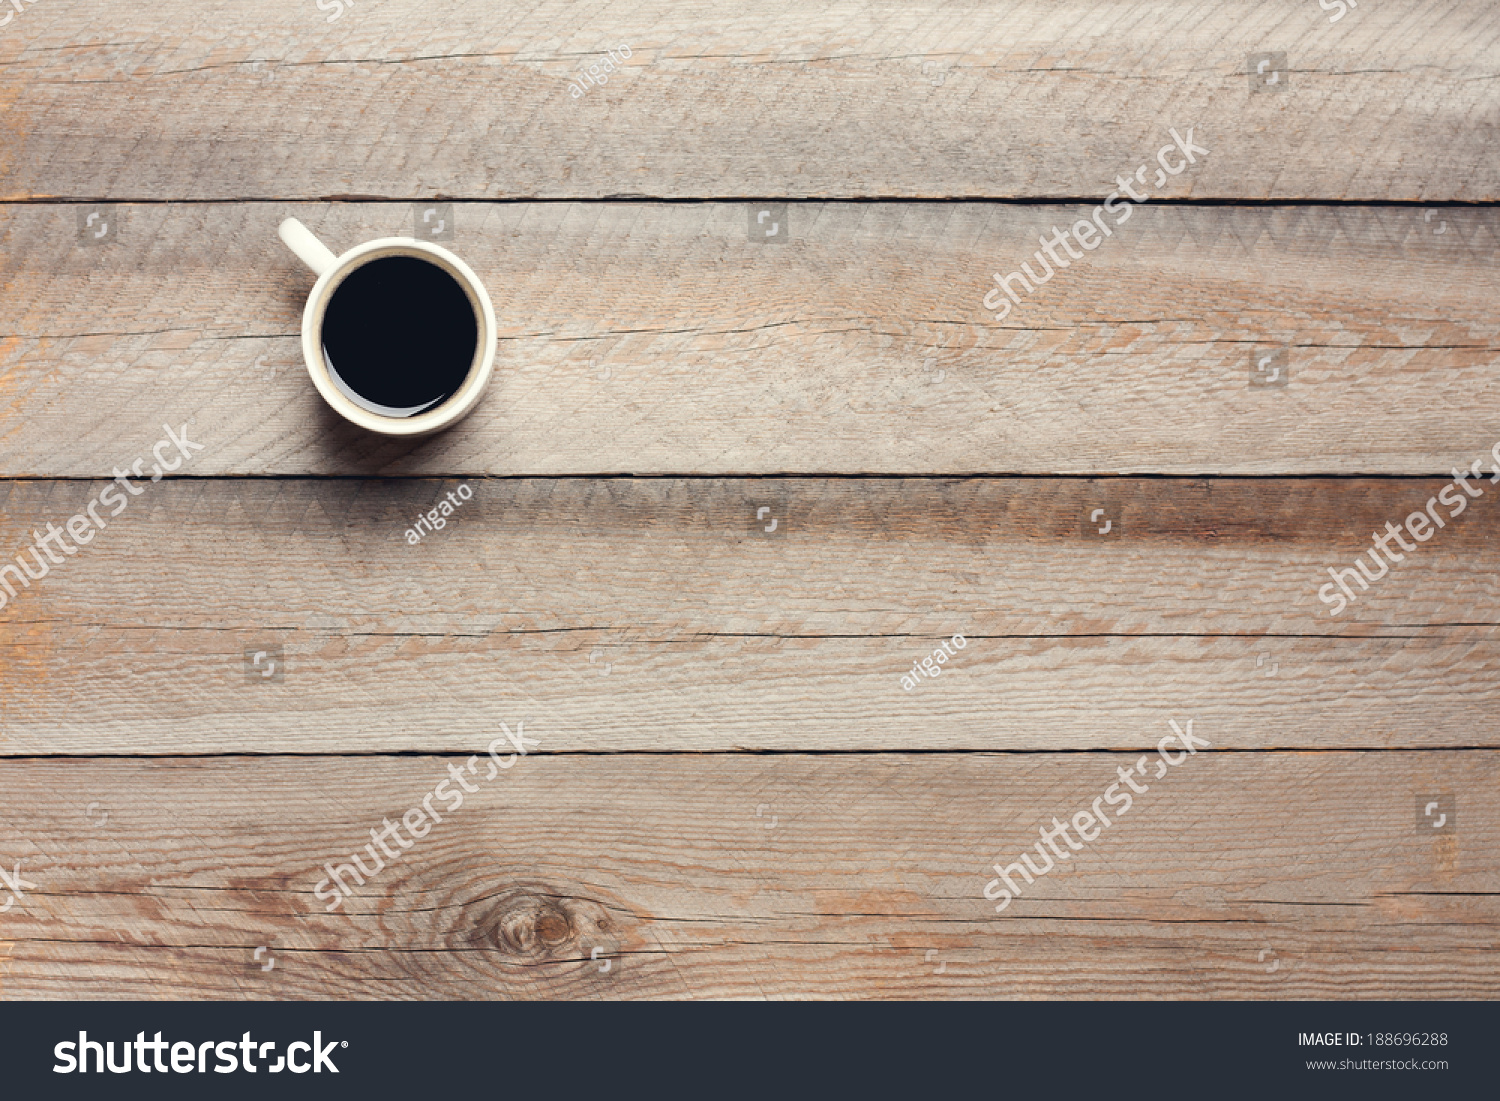 Cup coffee on wooden table top stock photo 188696288 for Html table th always on top